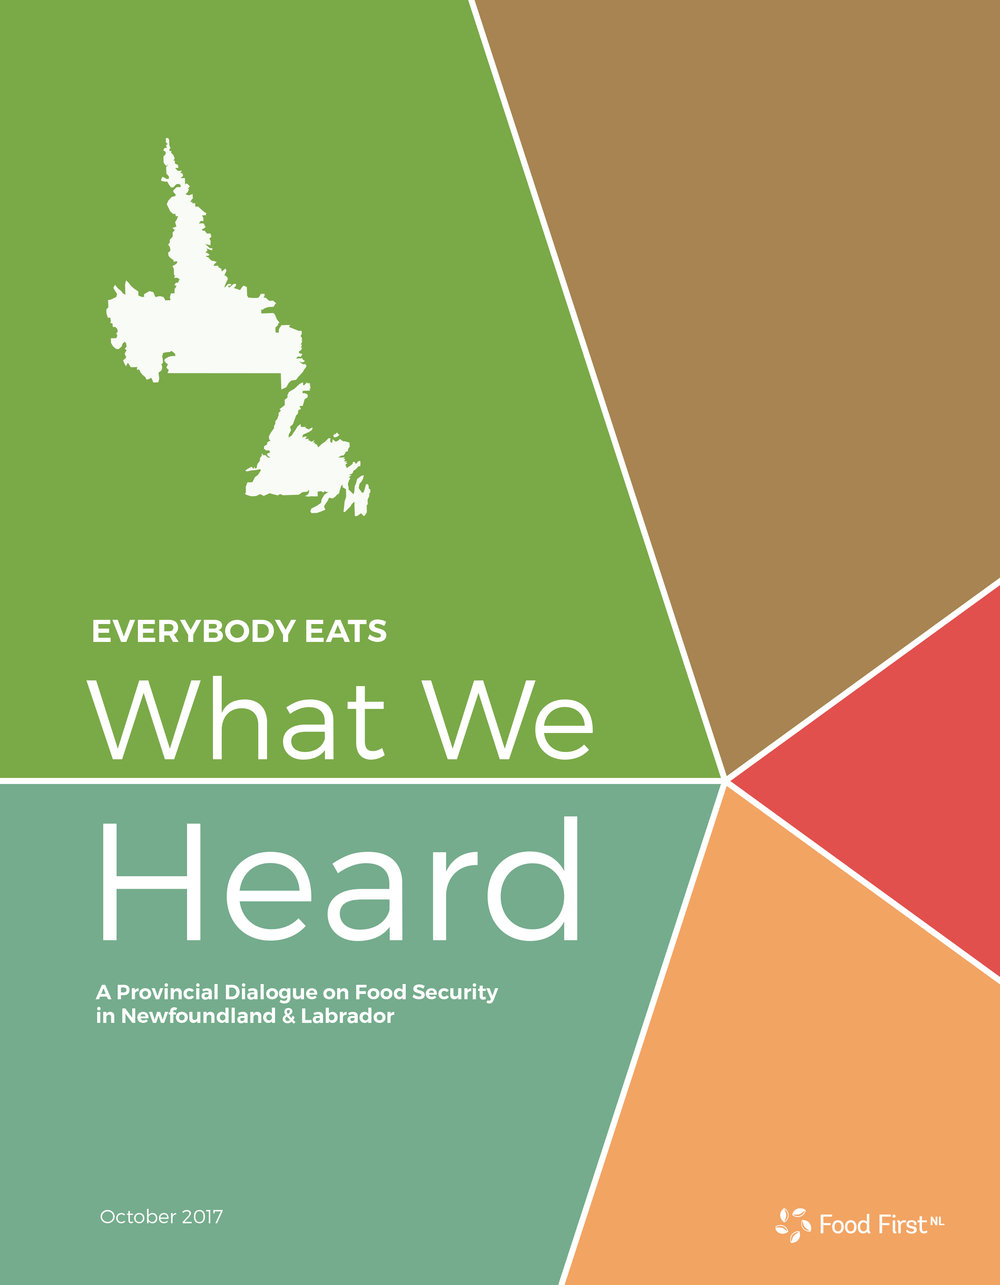 Everybody Eats_NL_What We Heard 2017 Cover.jpg